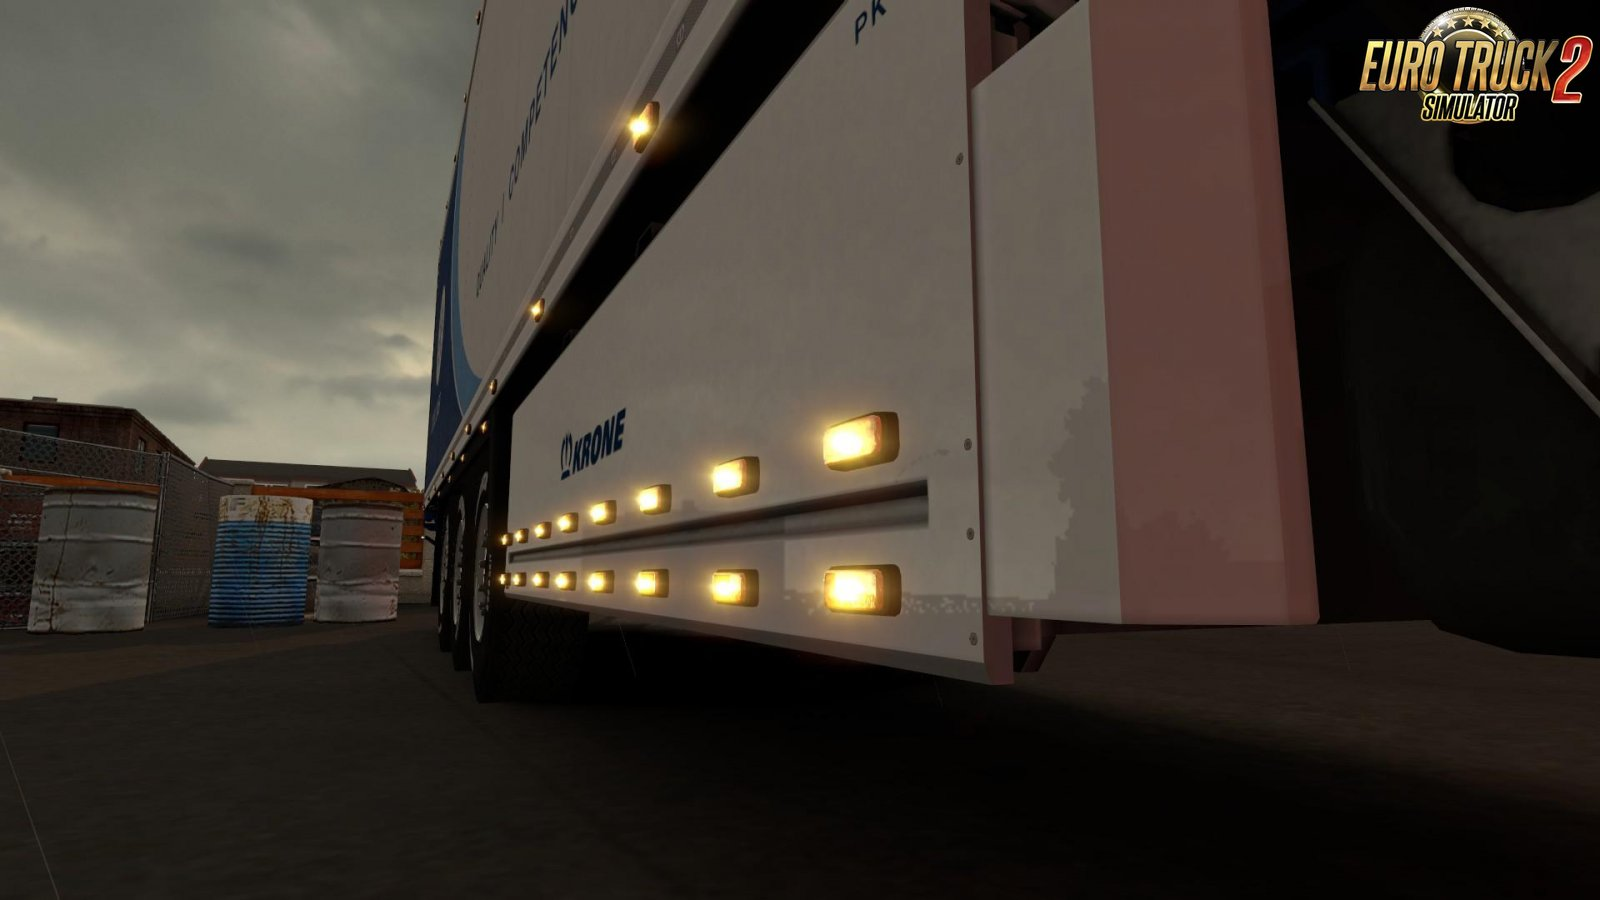 Slots for KRONE Trailers v0.02 in Ets2